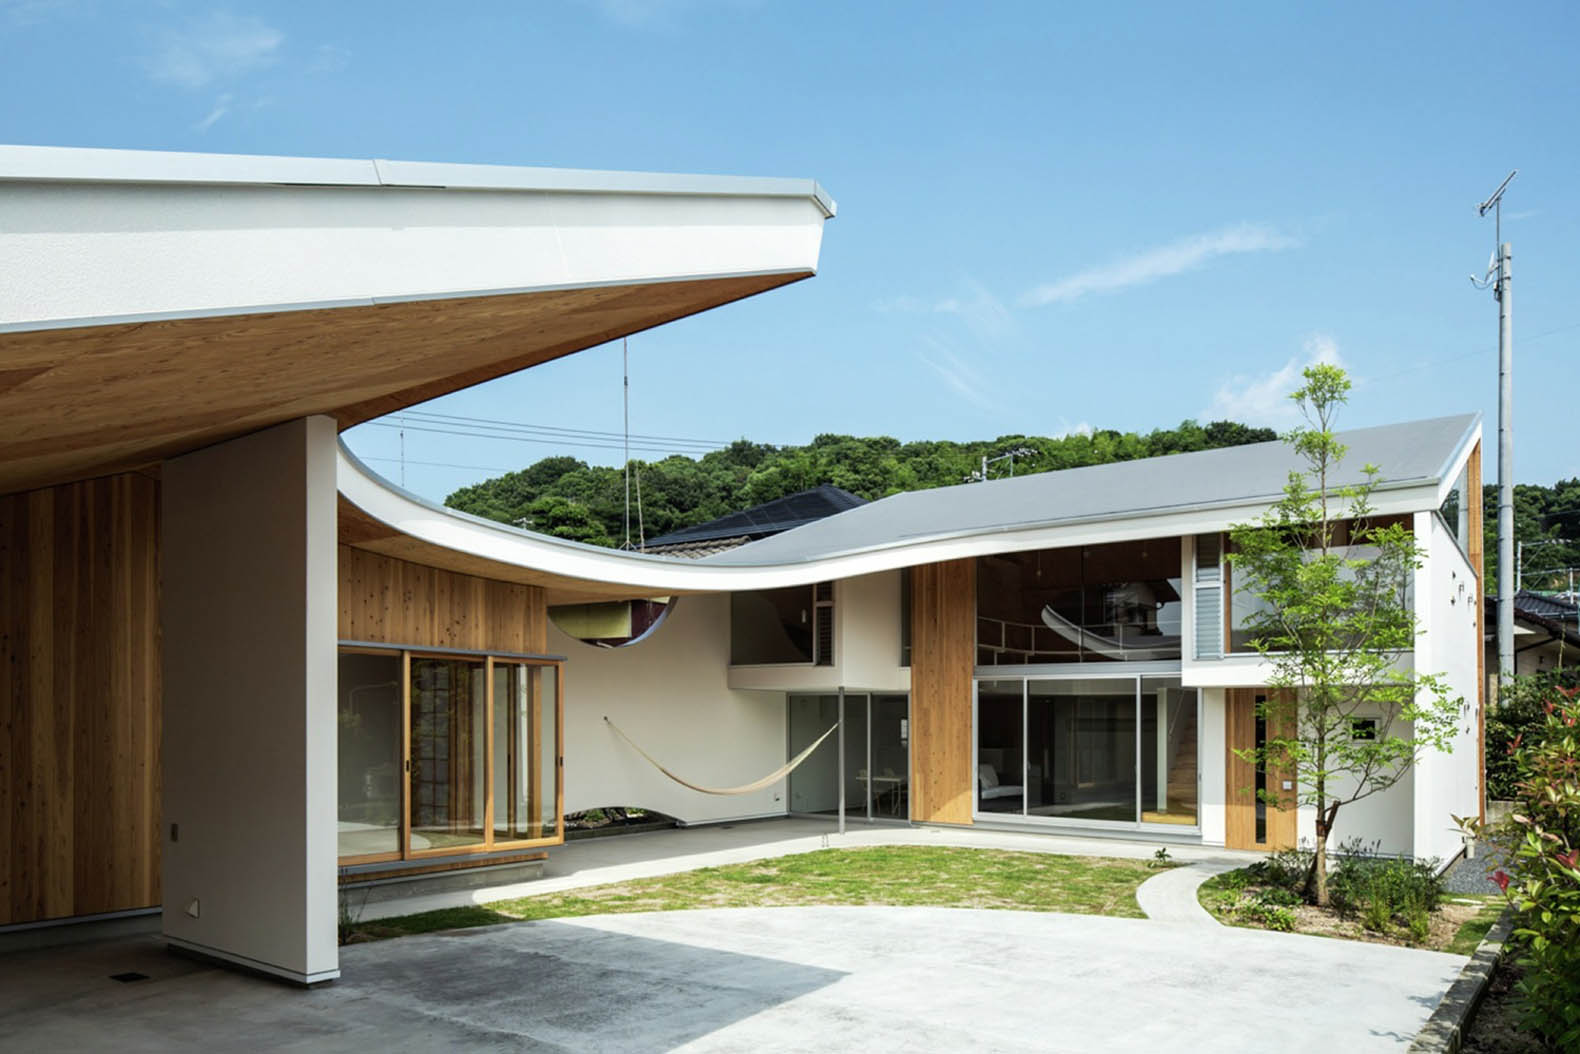 A gentle blanket-like roof covers the daylit interiors of this family house in Japan